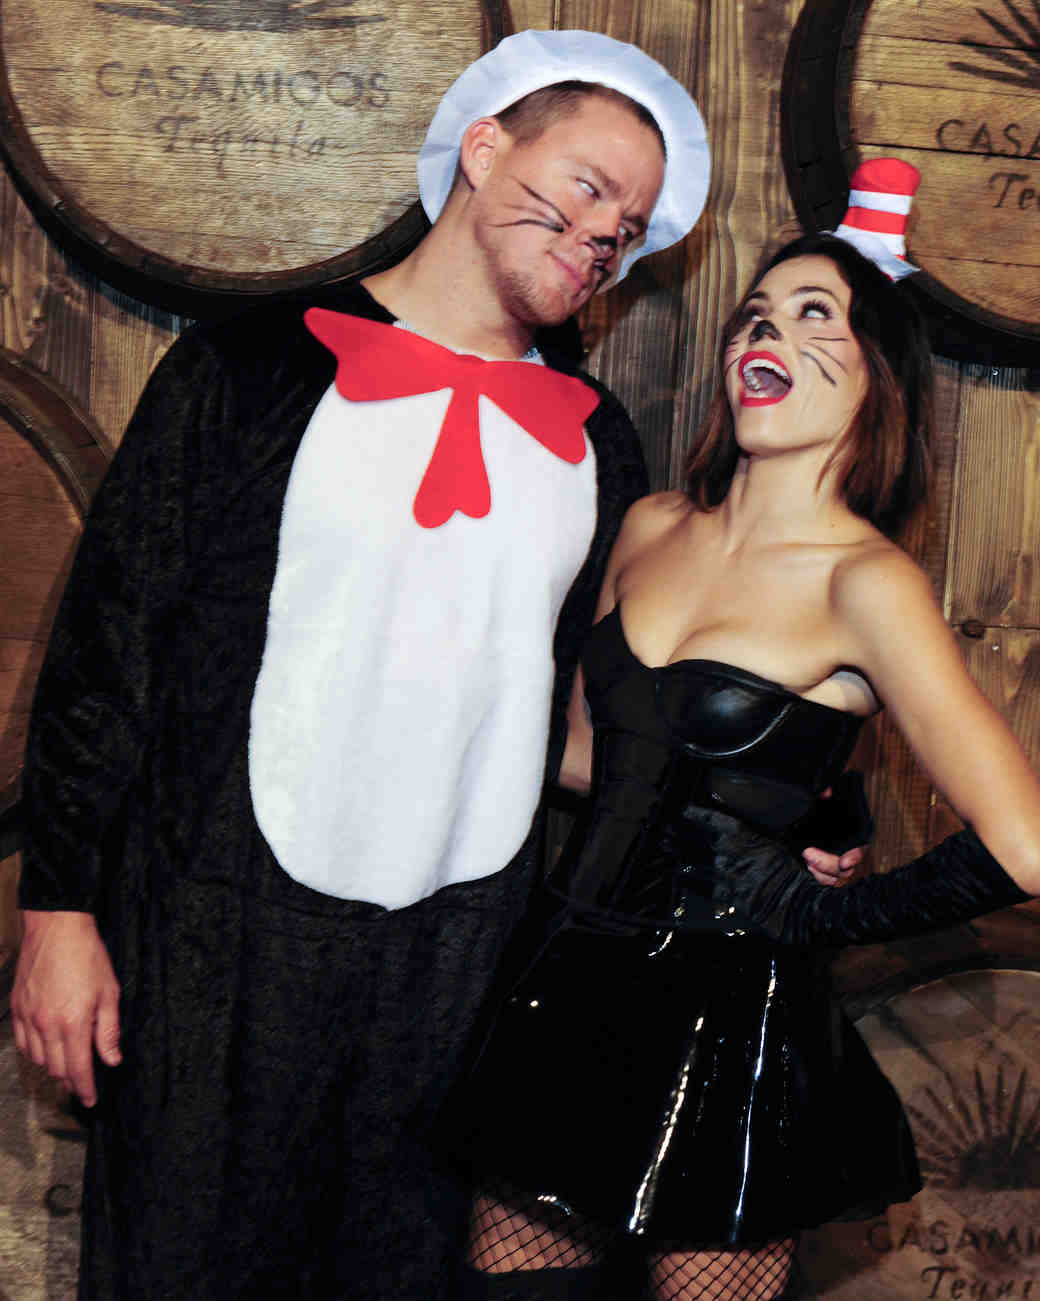 Jenna Dewan Tatum and Channing Tatum in Cat in the Hat Halloween Costumes